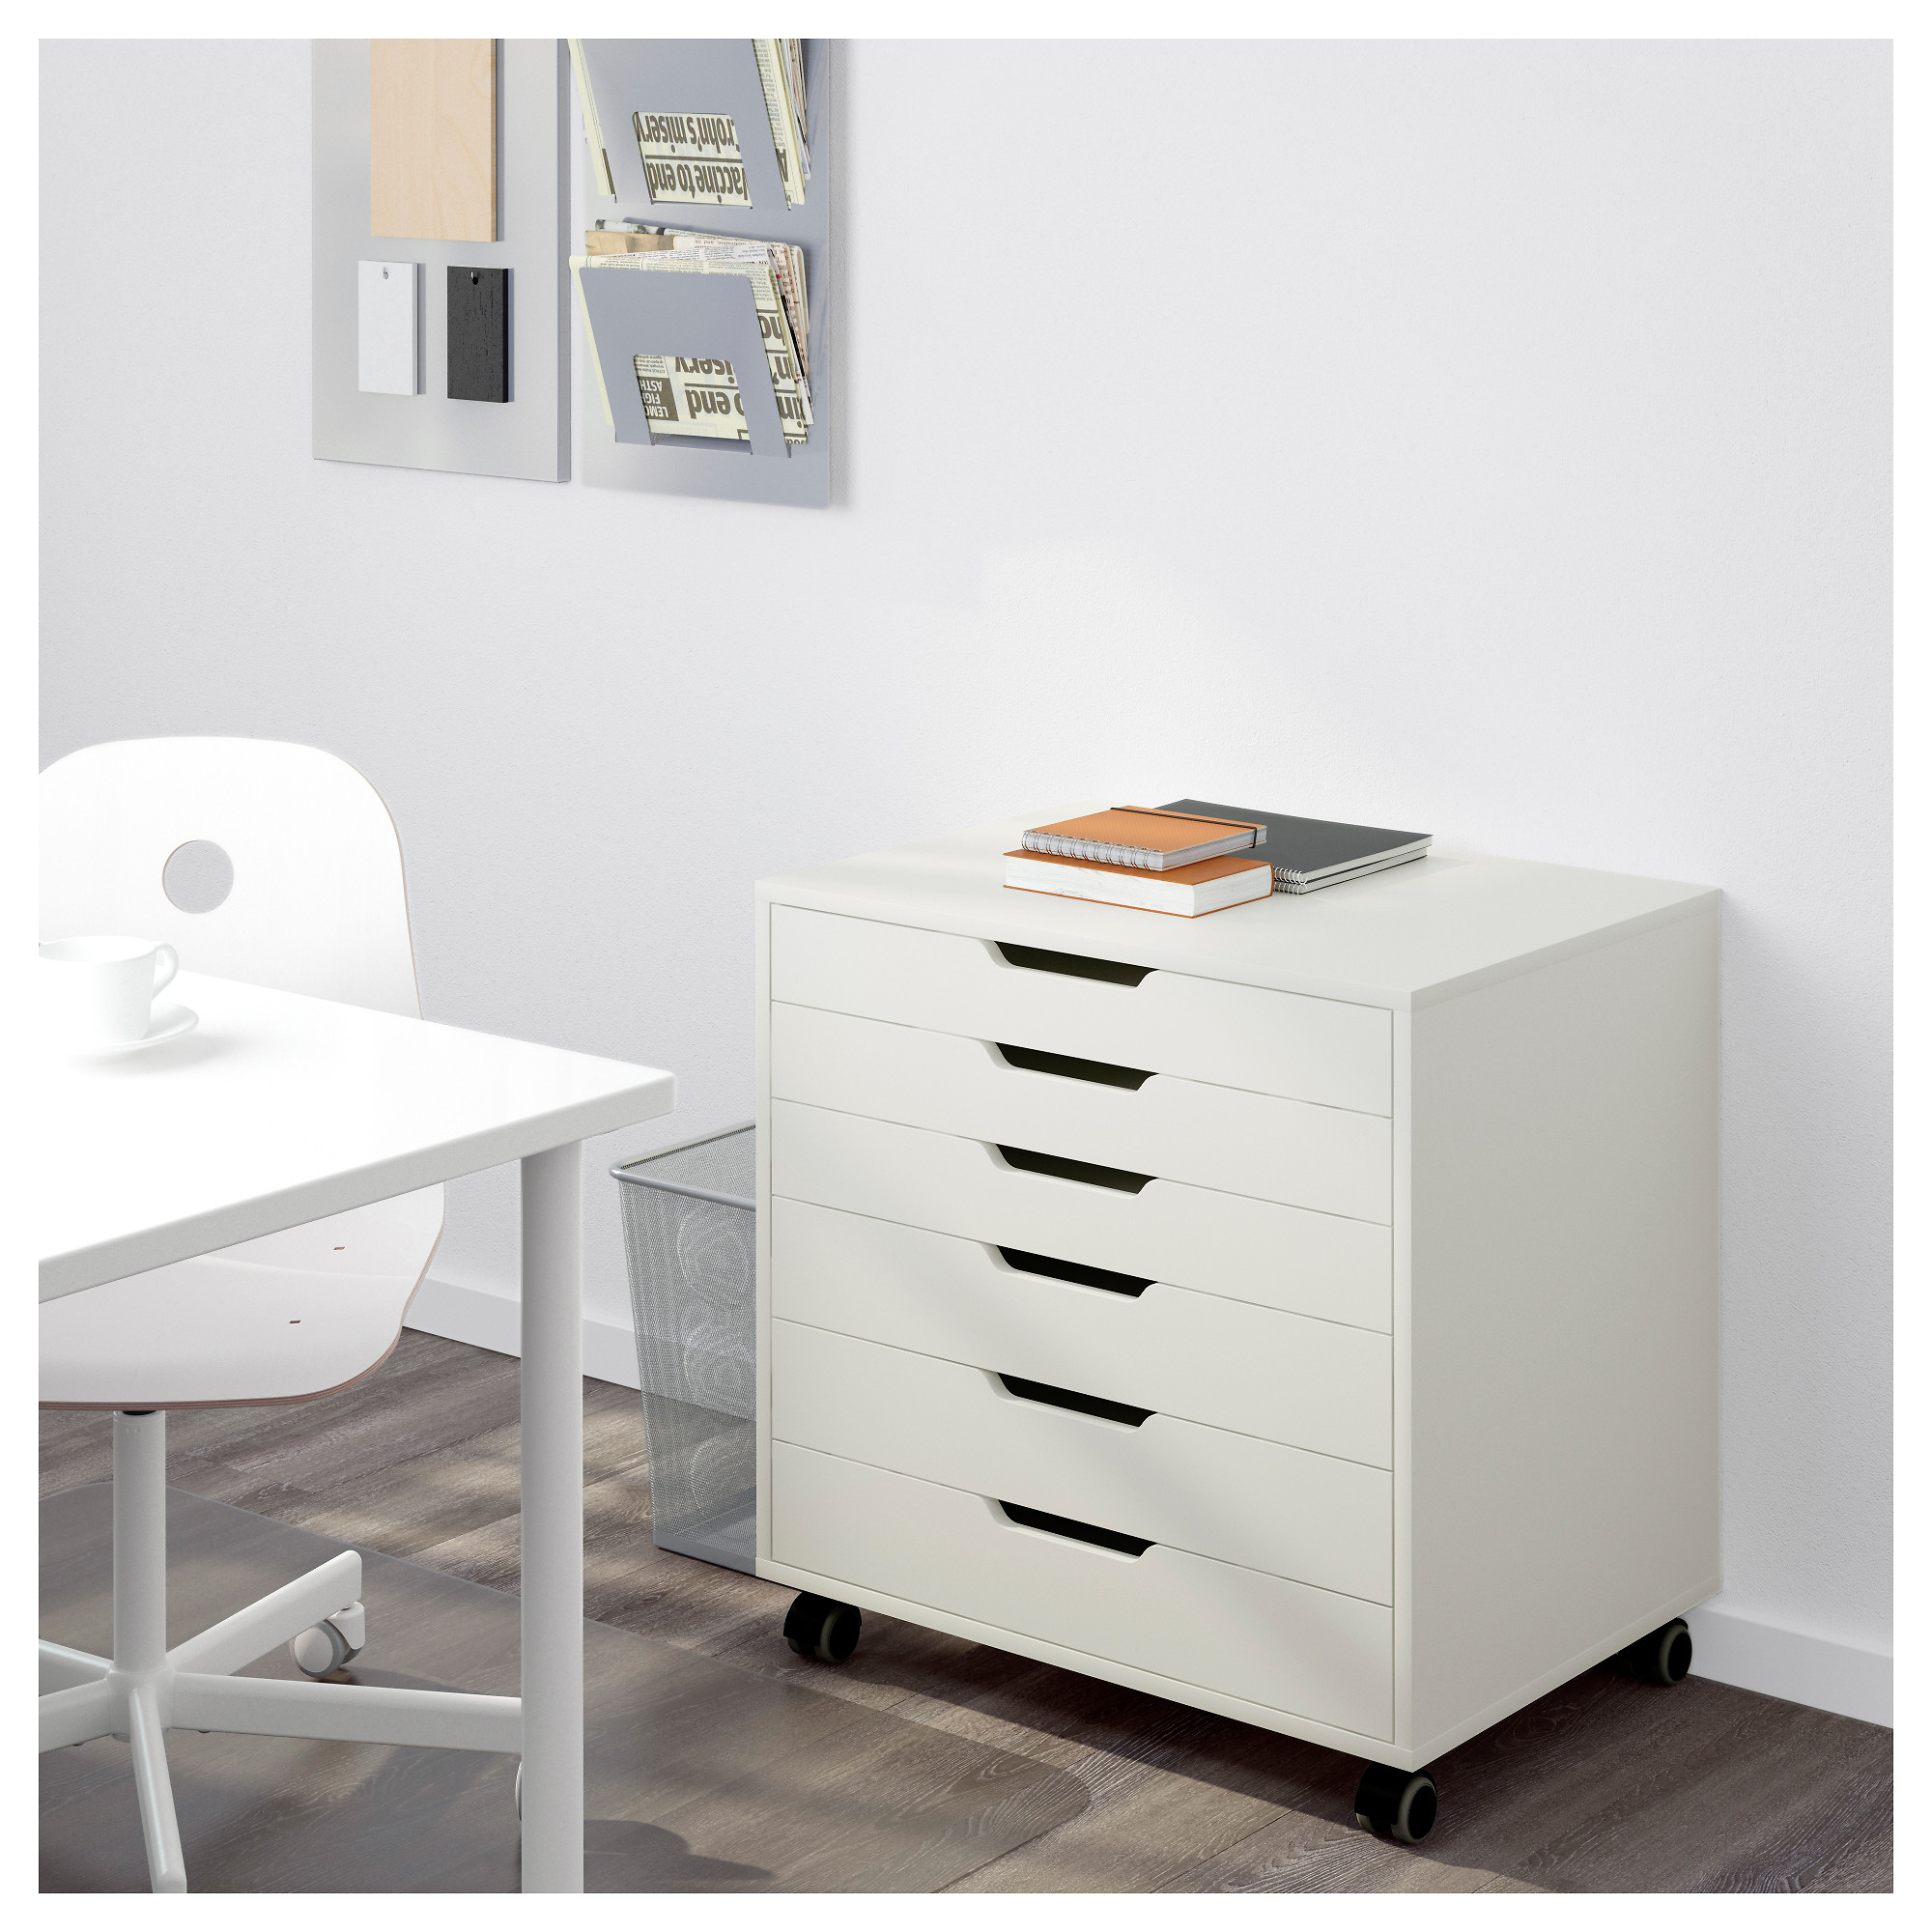 Beau ALEX Drawer Unit On Casters   White   IKEA